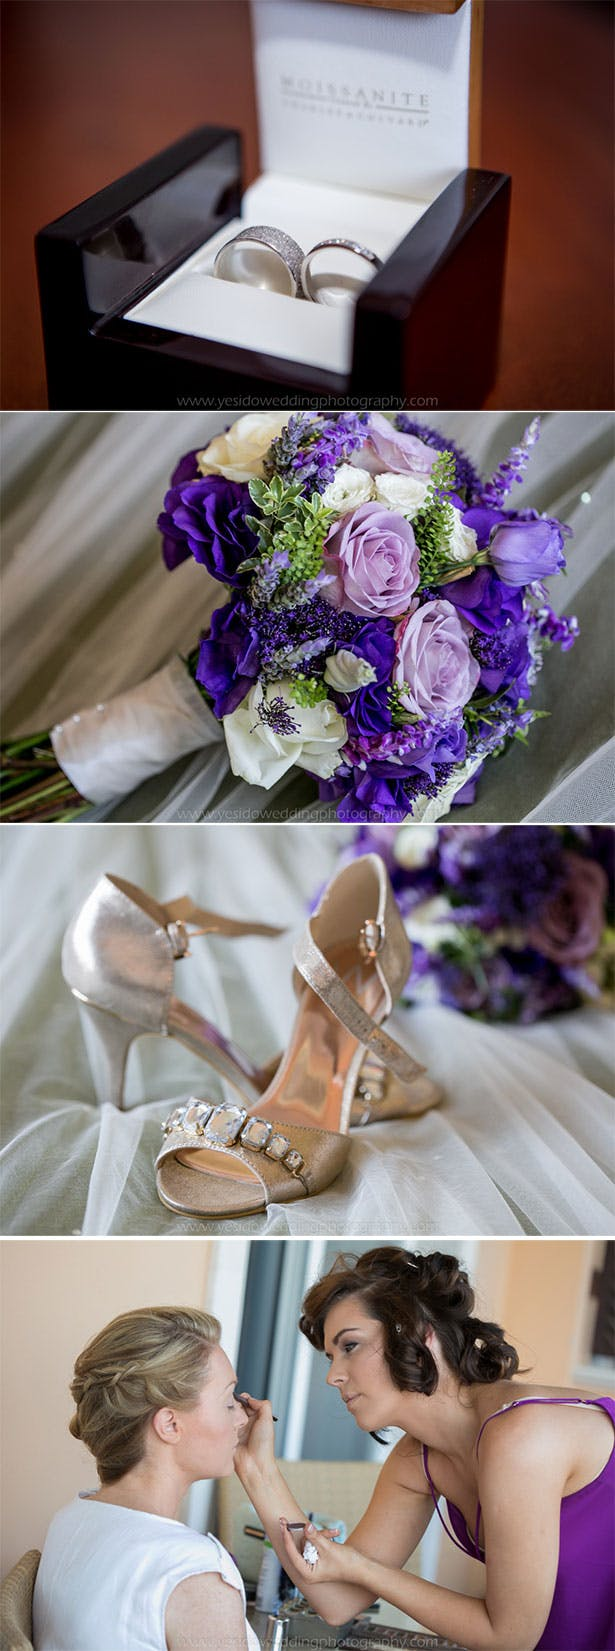 Bridal accessories | Marina and Gary's lavender real wedding | Yes I do! Algarve Wedding Photography | Confetti.fo.uk